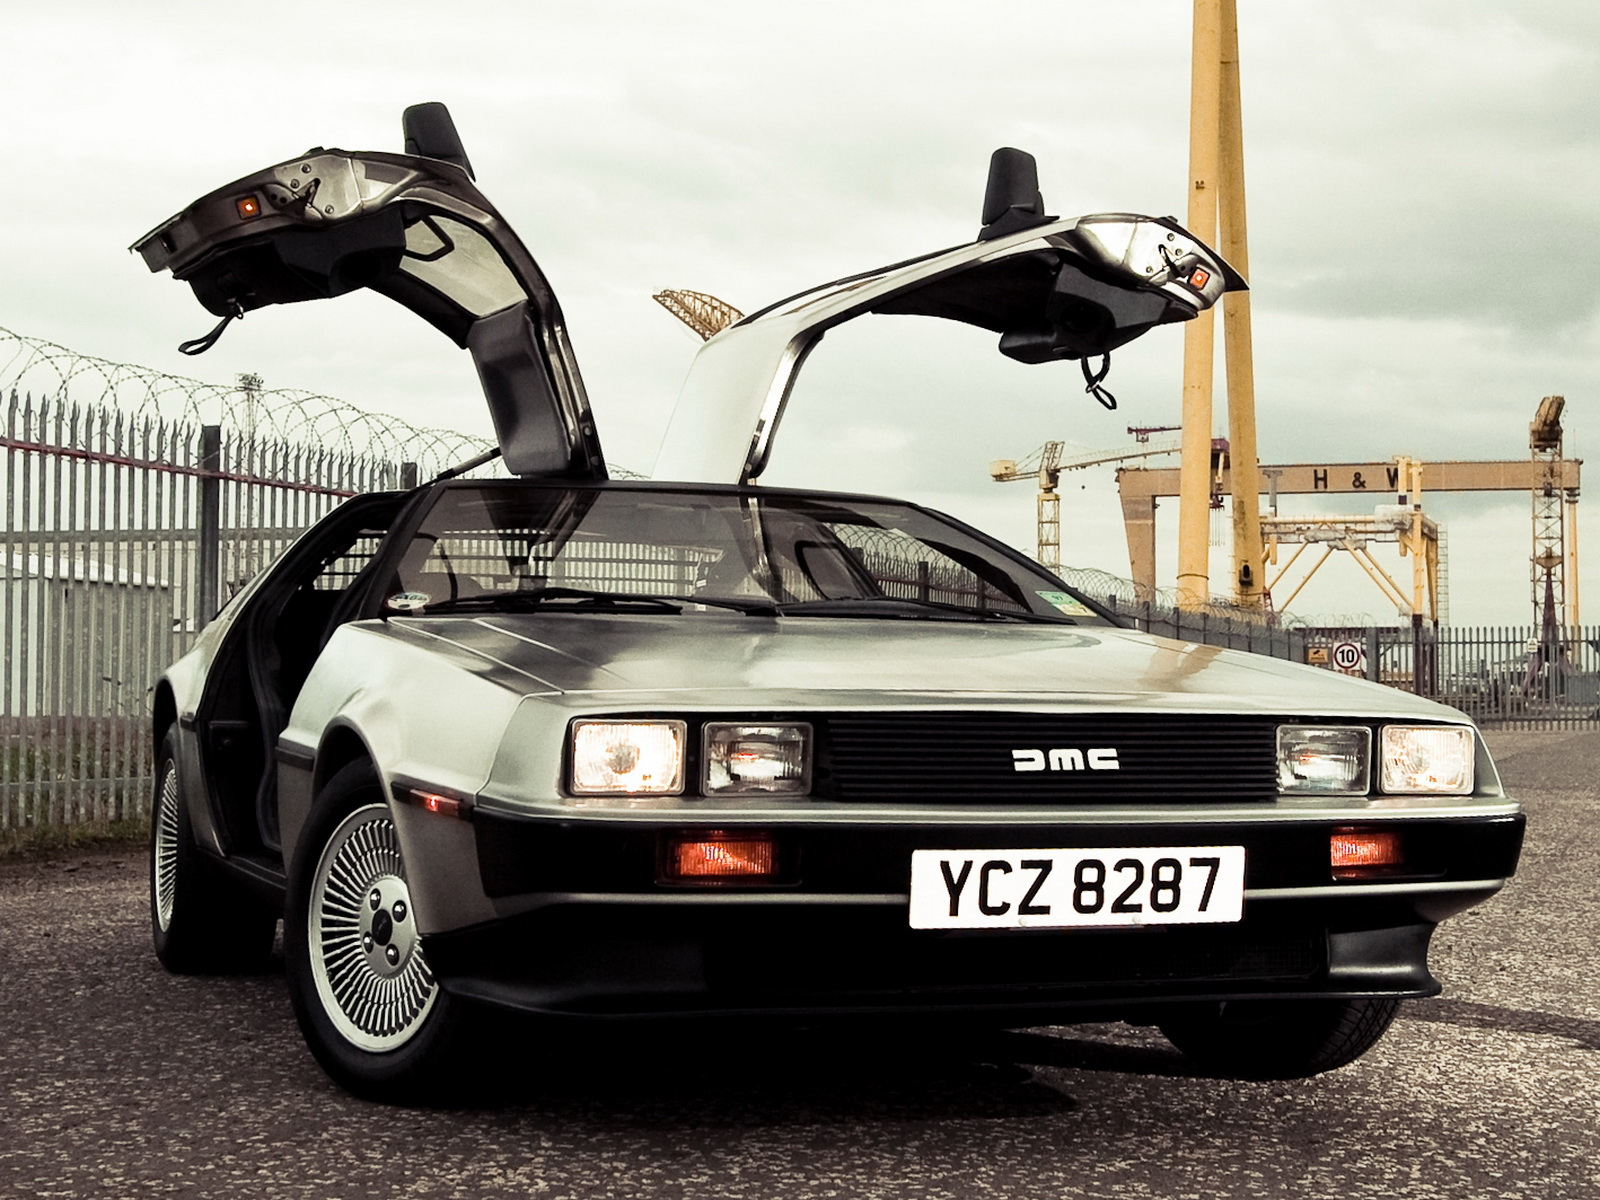 DeLorean-DMC-12-Image-16